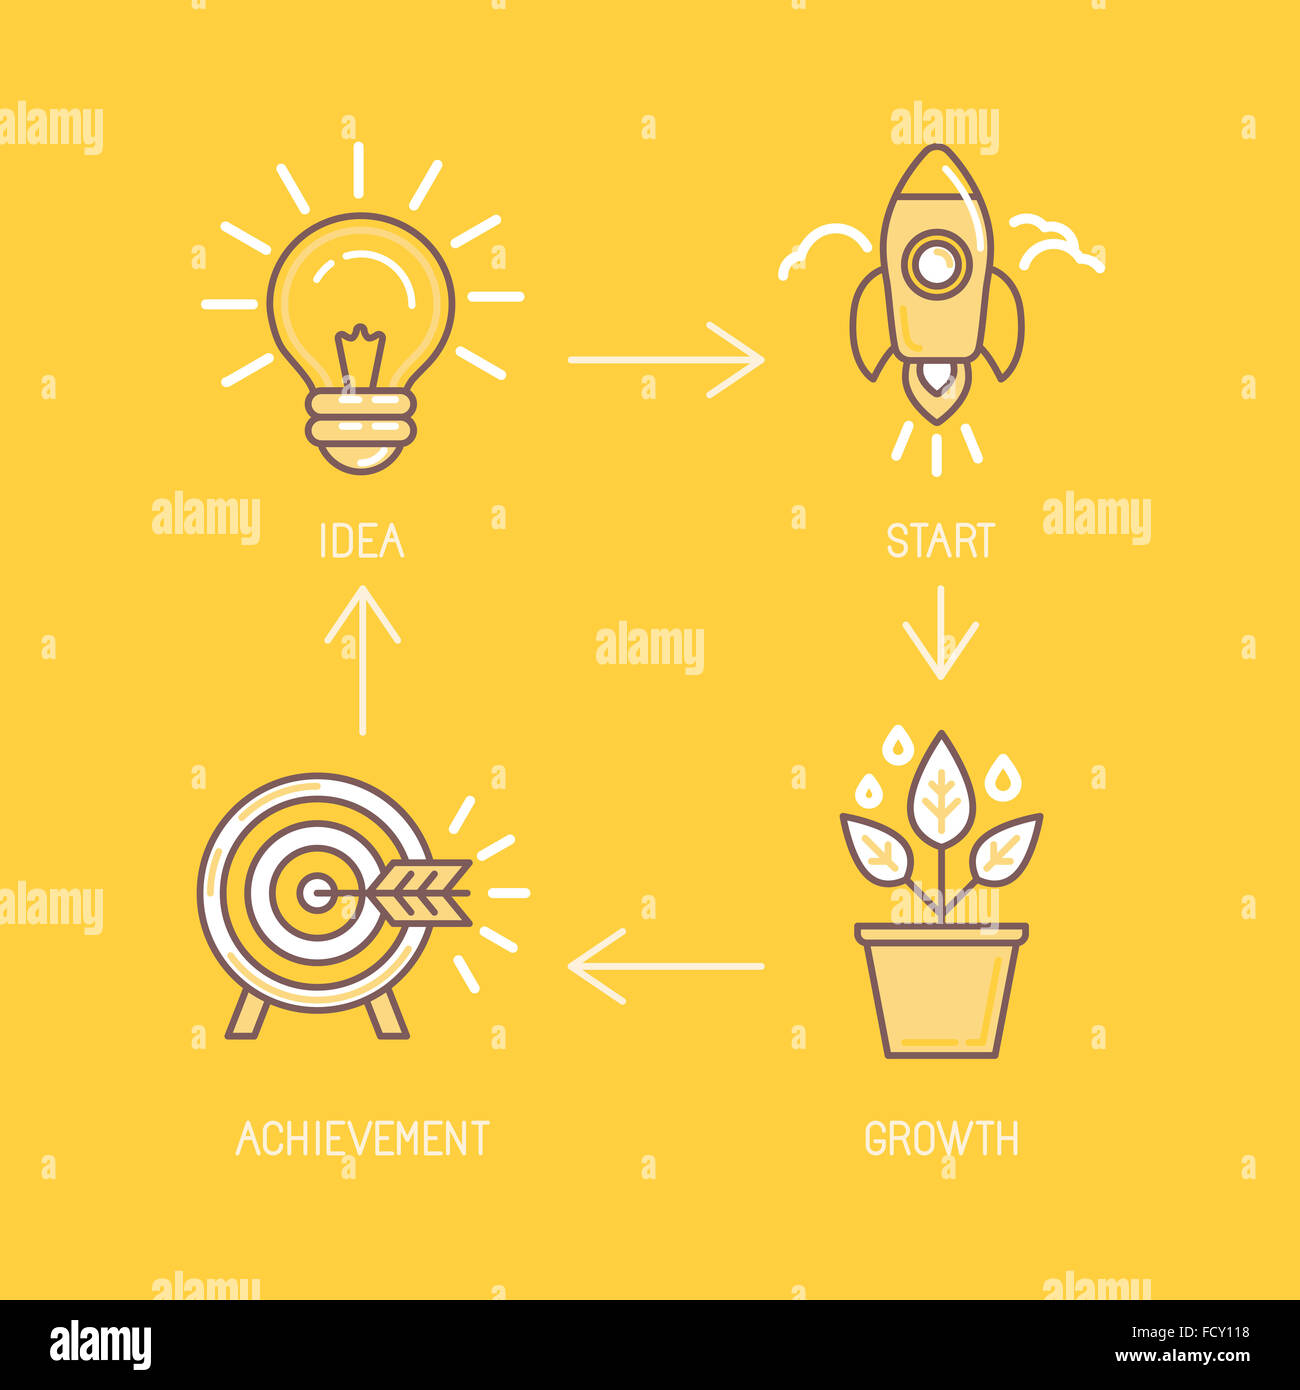 Infographic design element and concept illustration in trendy linear style - steps of developing business from idea - Stock Image